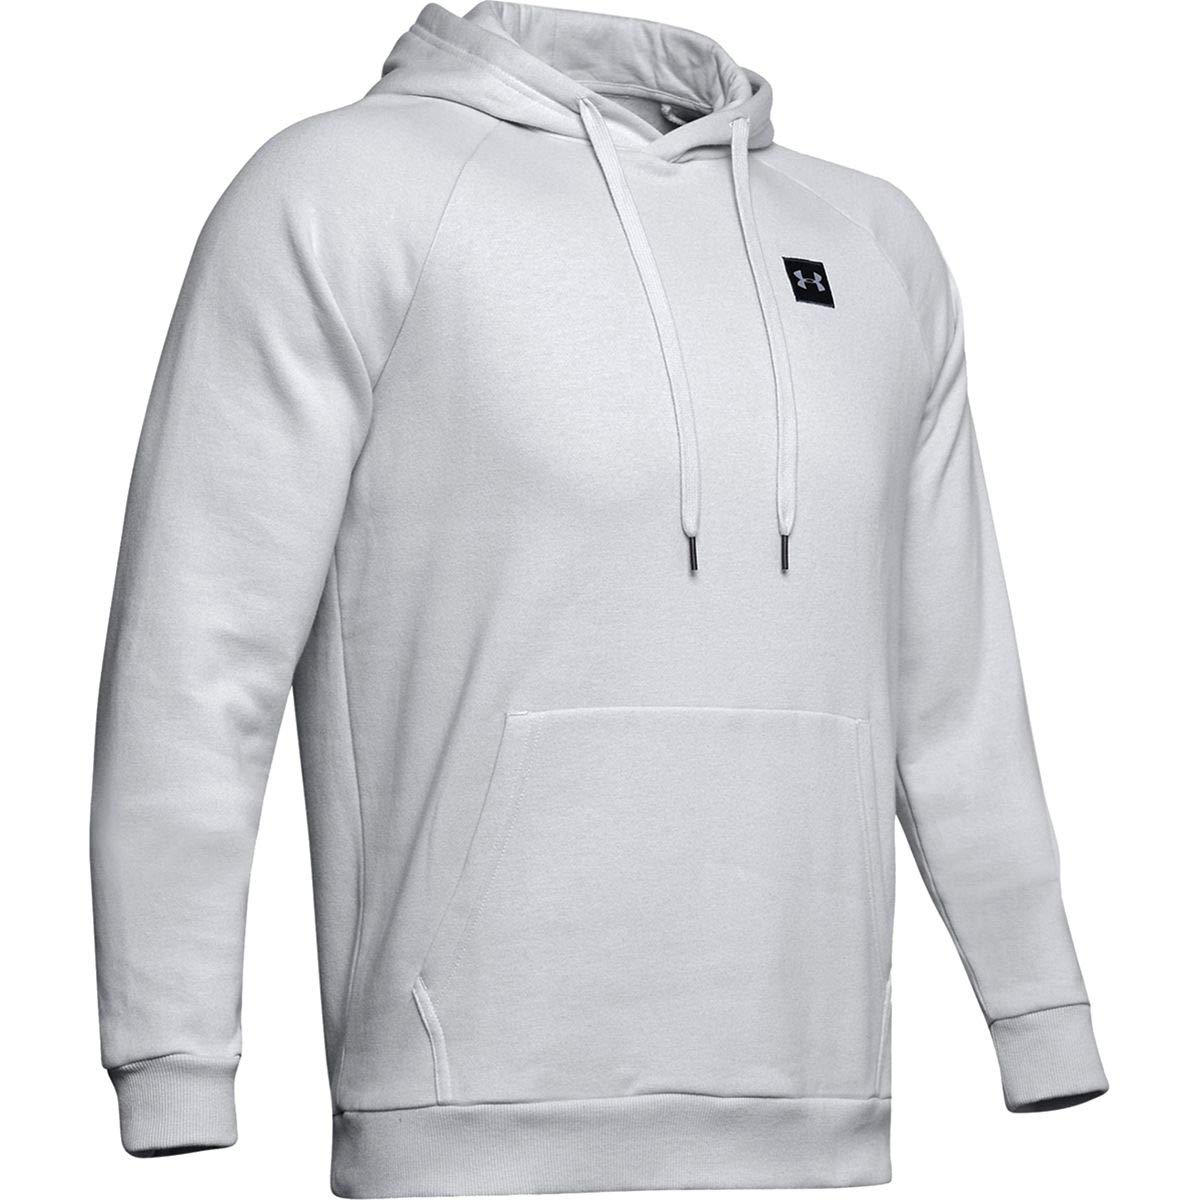 Under Armour Men's Rival Fleece Hoodie, Halo Gray (014)/Black, Small by Under Armour